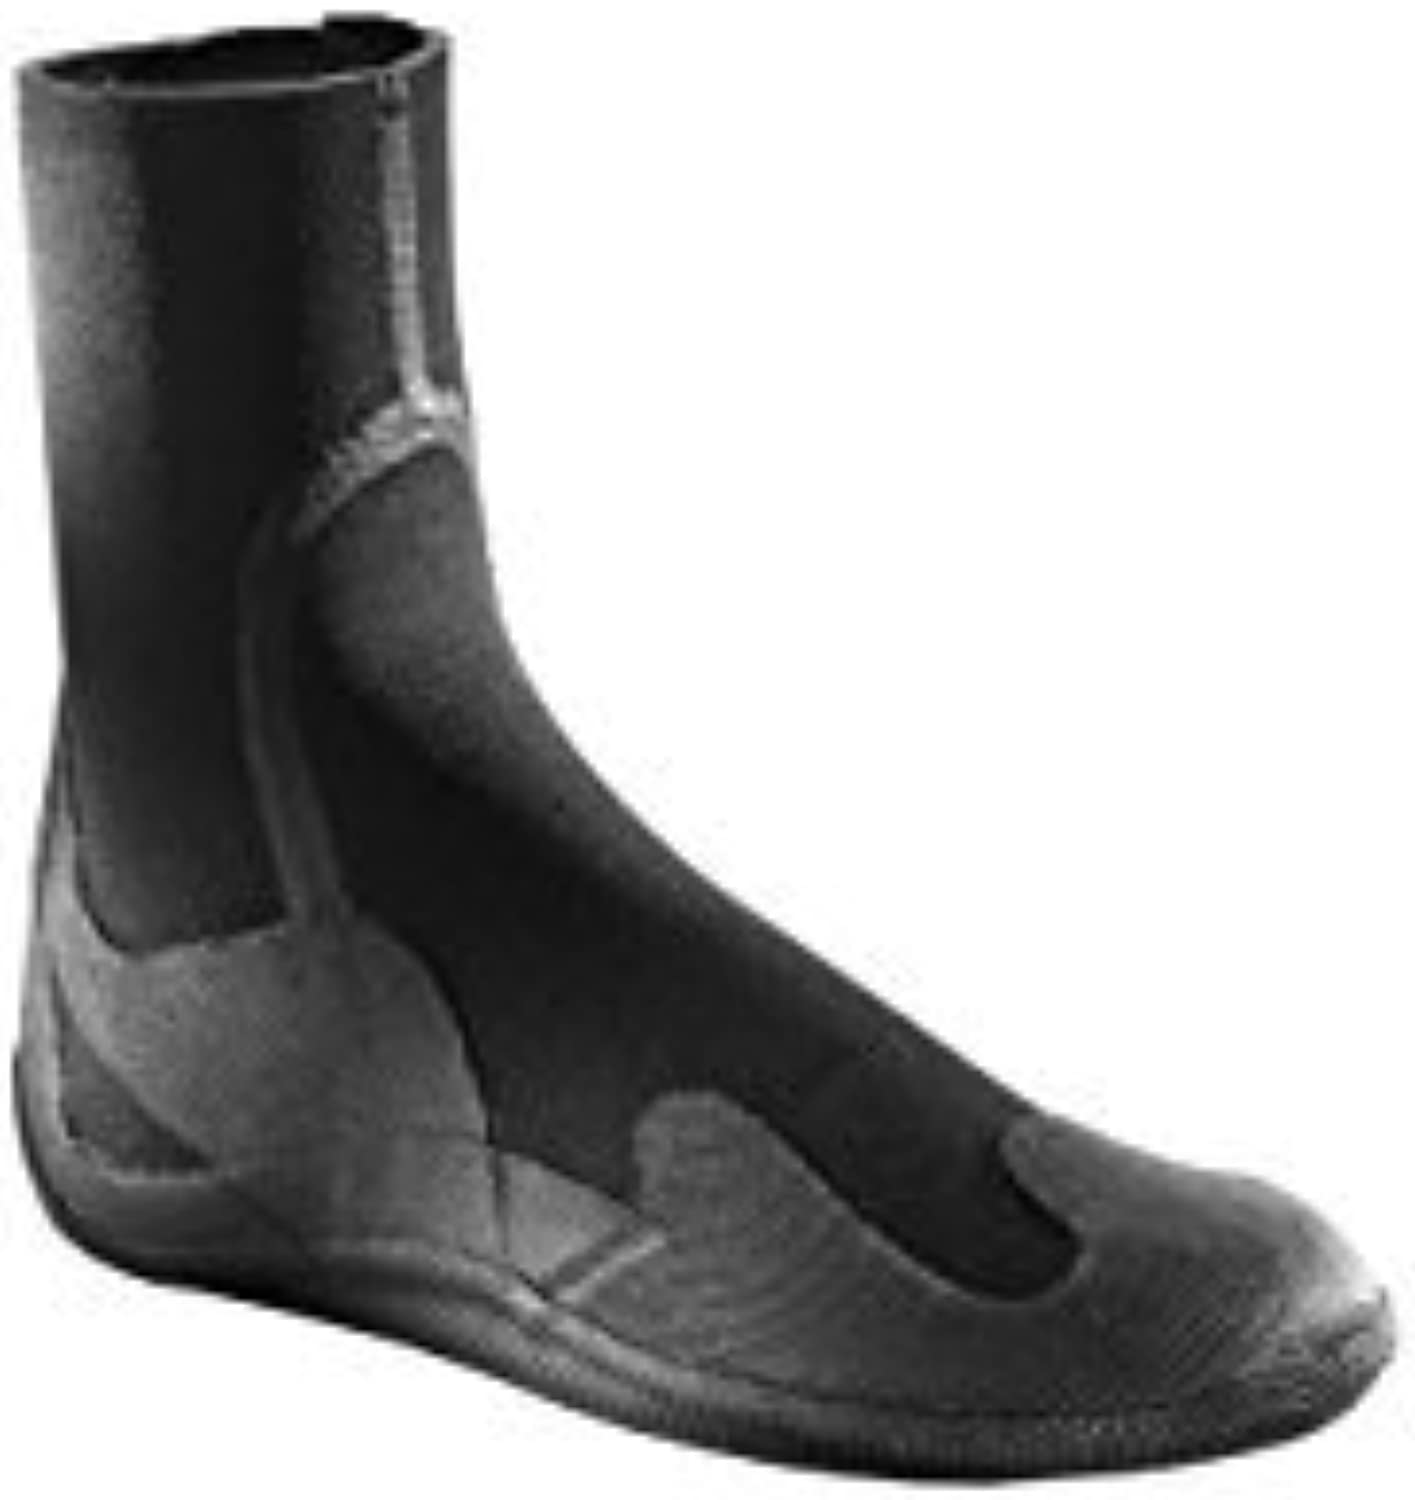 Xcel Youth 3mm Xplorer Round Toe Boot with Zip, Black, 5 by Xcel